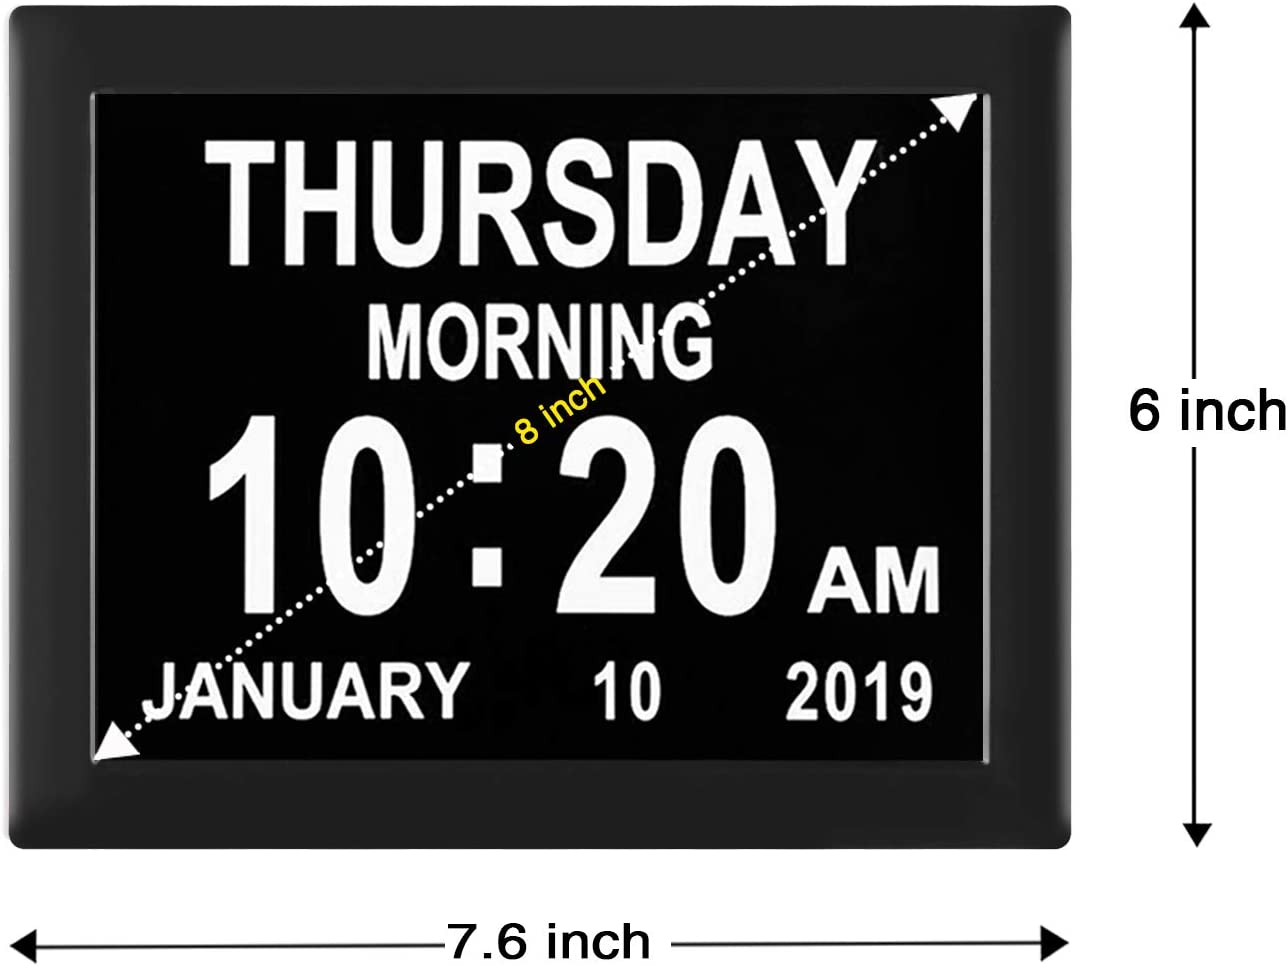 Black Elderly Memory Loss with Play Video//Photo Function TMC Newest Version Digital Calendar Day Clock -8 Alarms,Extra Large Non-Abbreviated Day for Vision Impaired